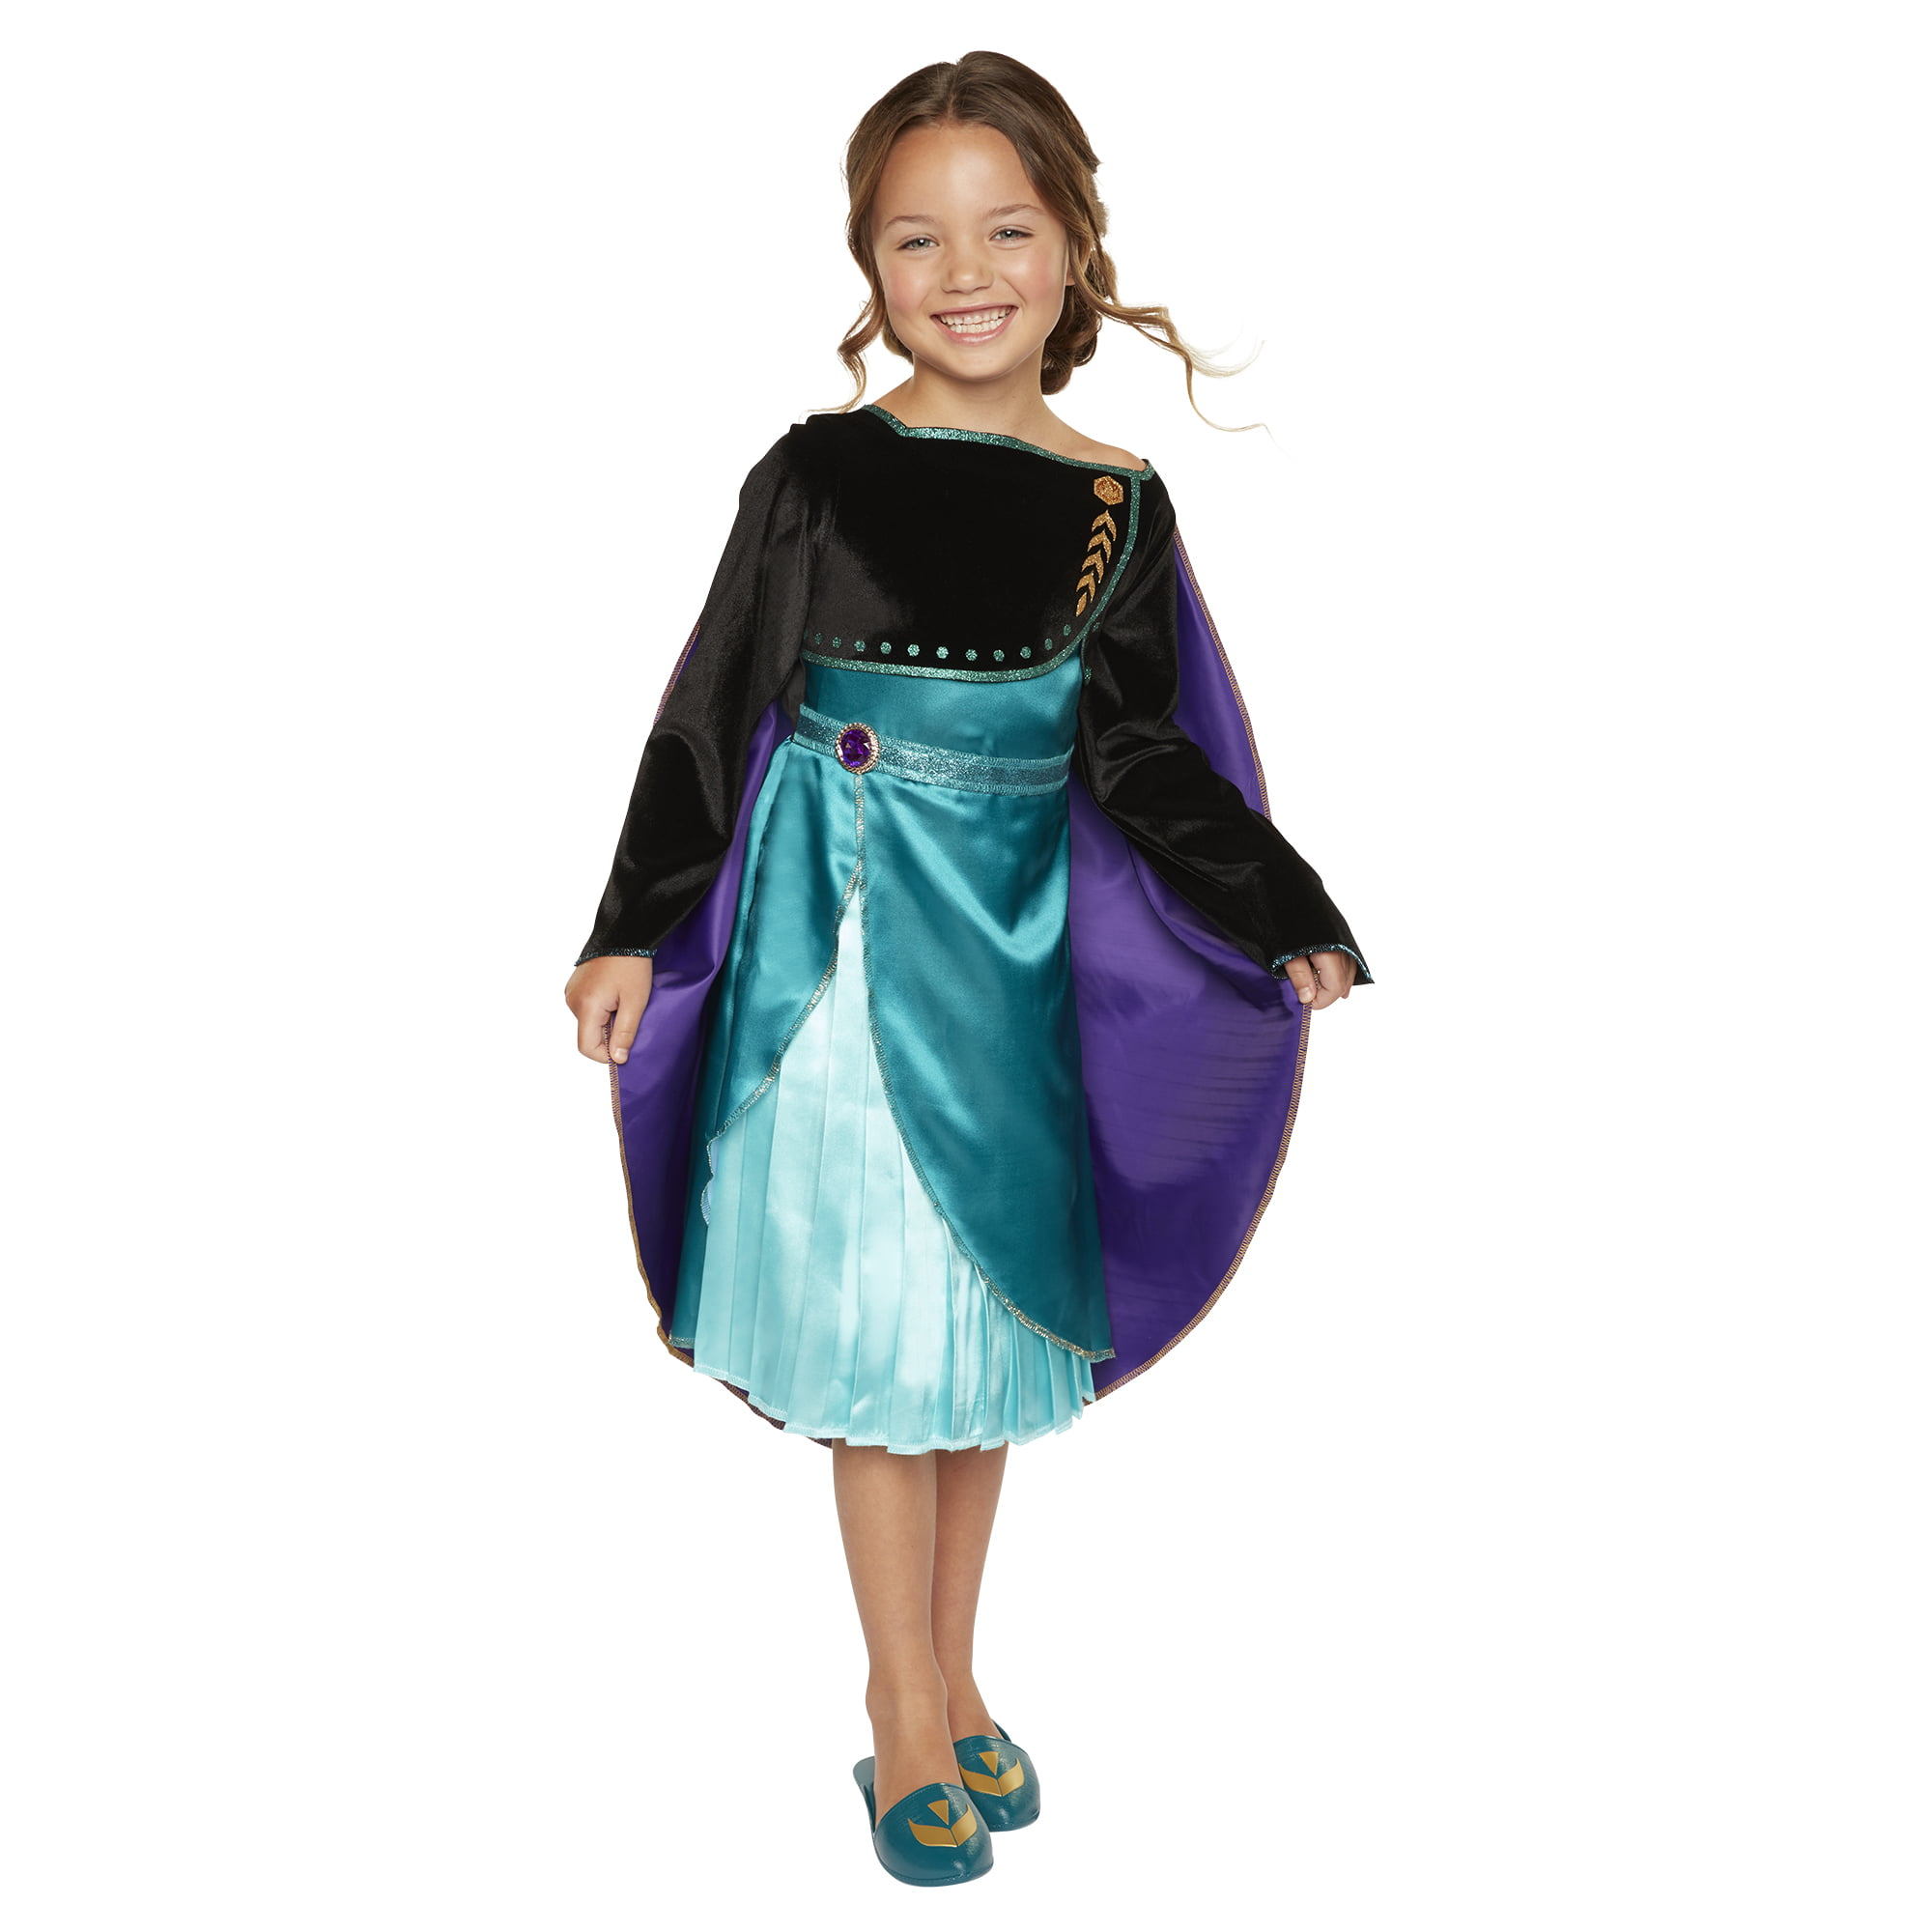 Disney Frozen 2 Queen Anna Dress - Outfit Fits Sizes 4-6X - Costume for Girls Ages 3+